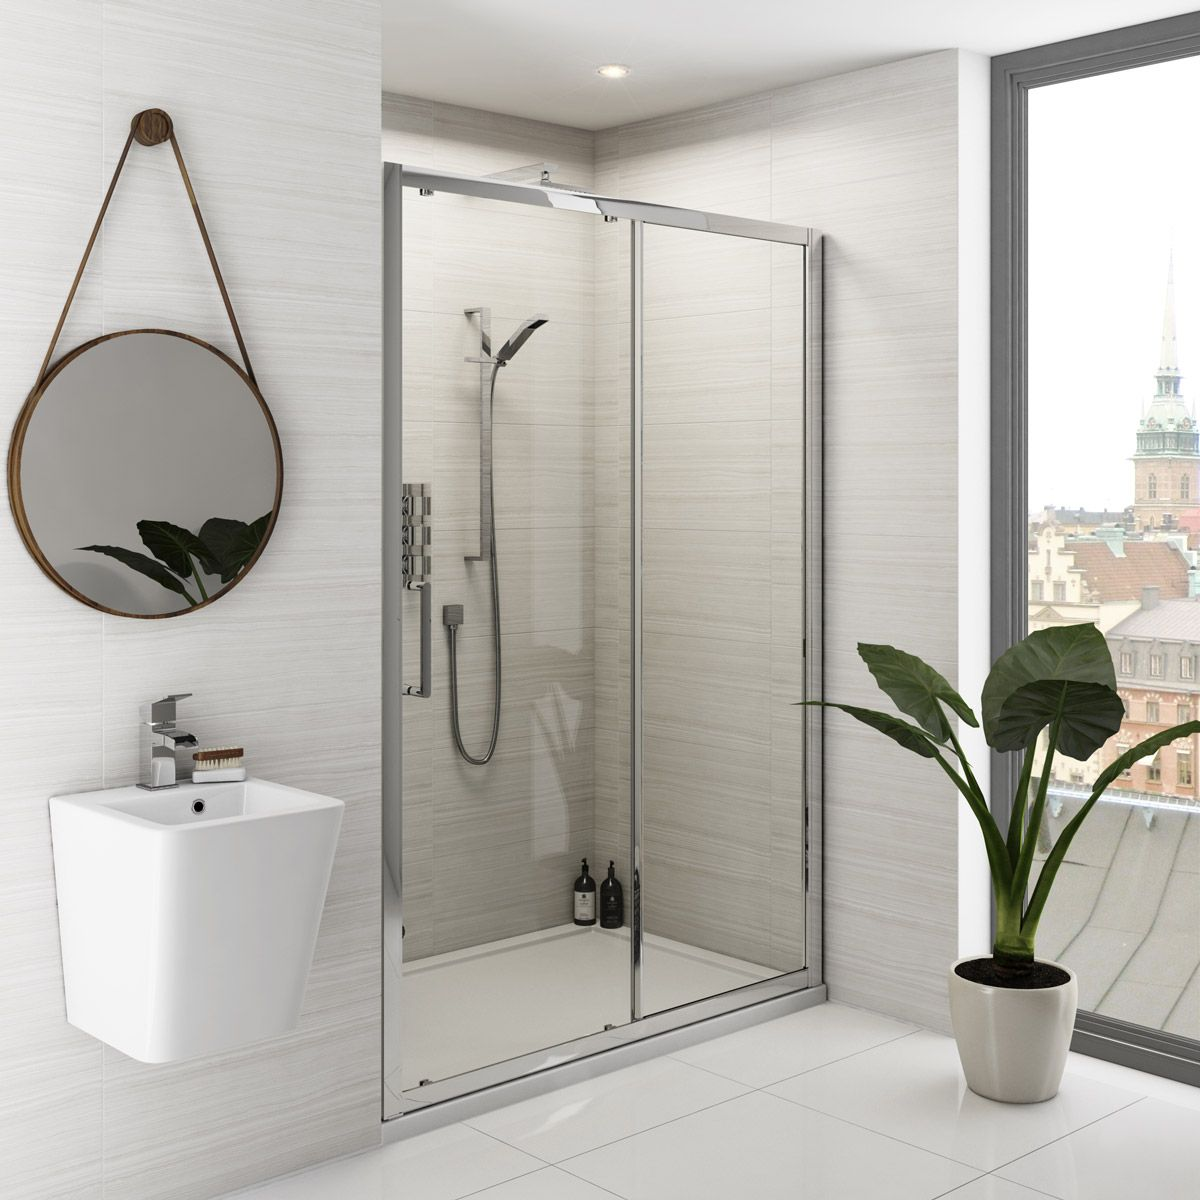 Click Here To Find Out More About Creating A Shower Enclosure In A